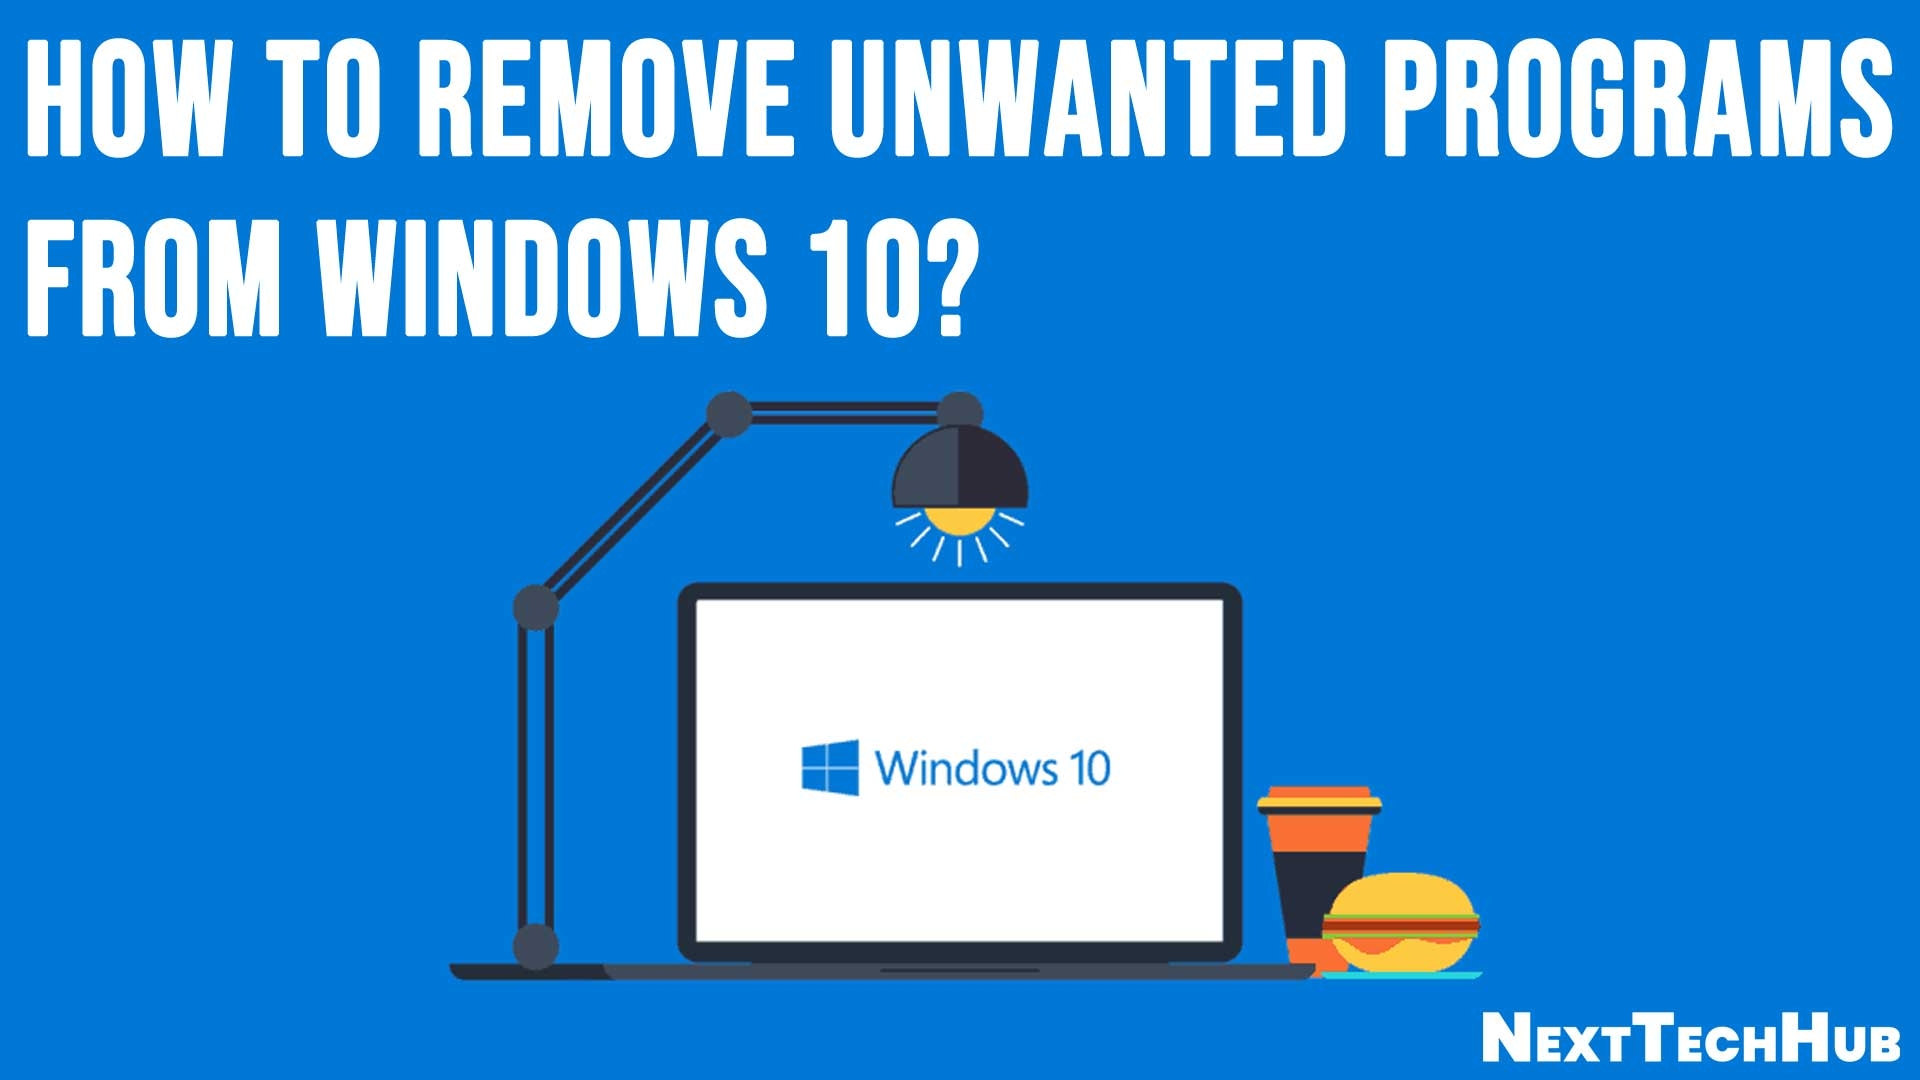 How to Remove Unwanted Programs From Windows 10